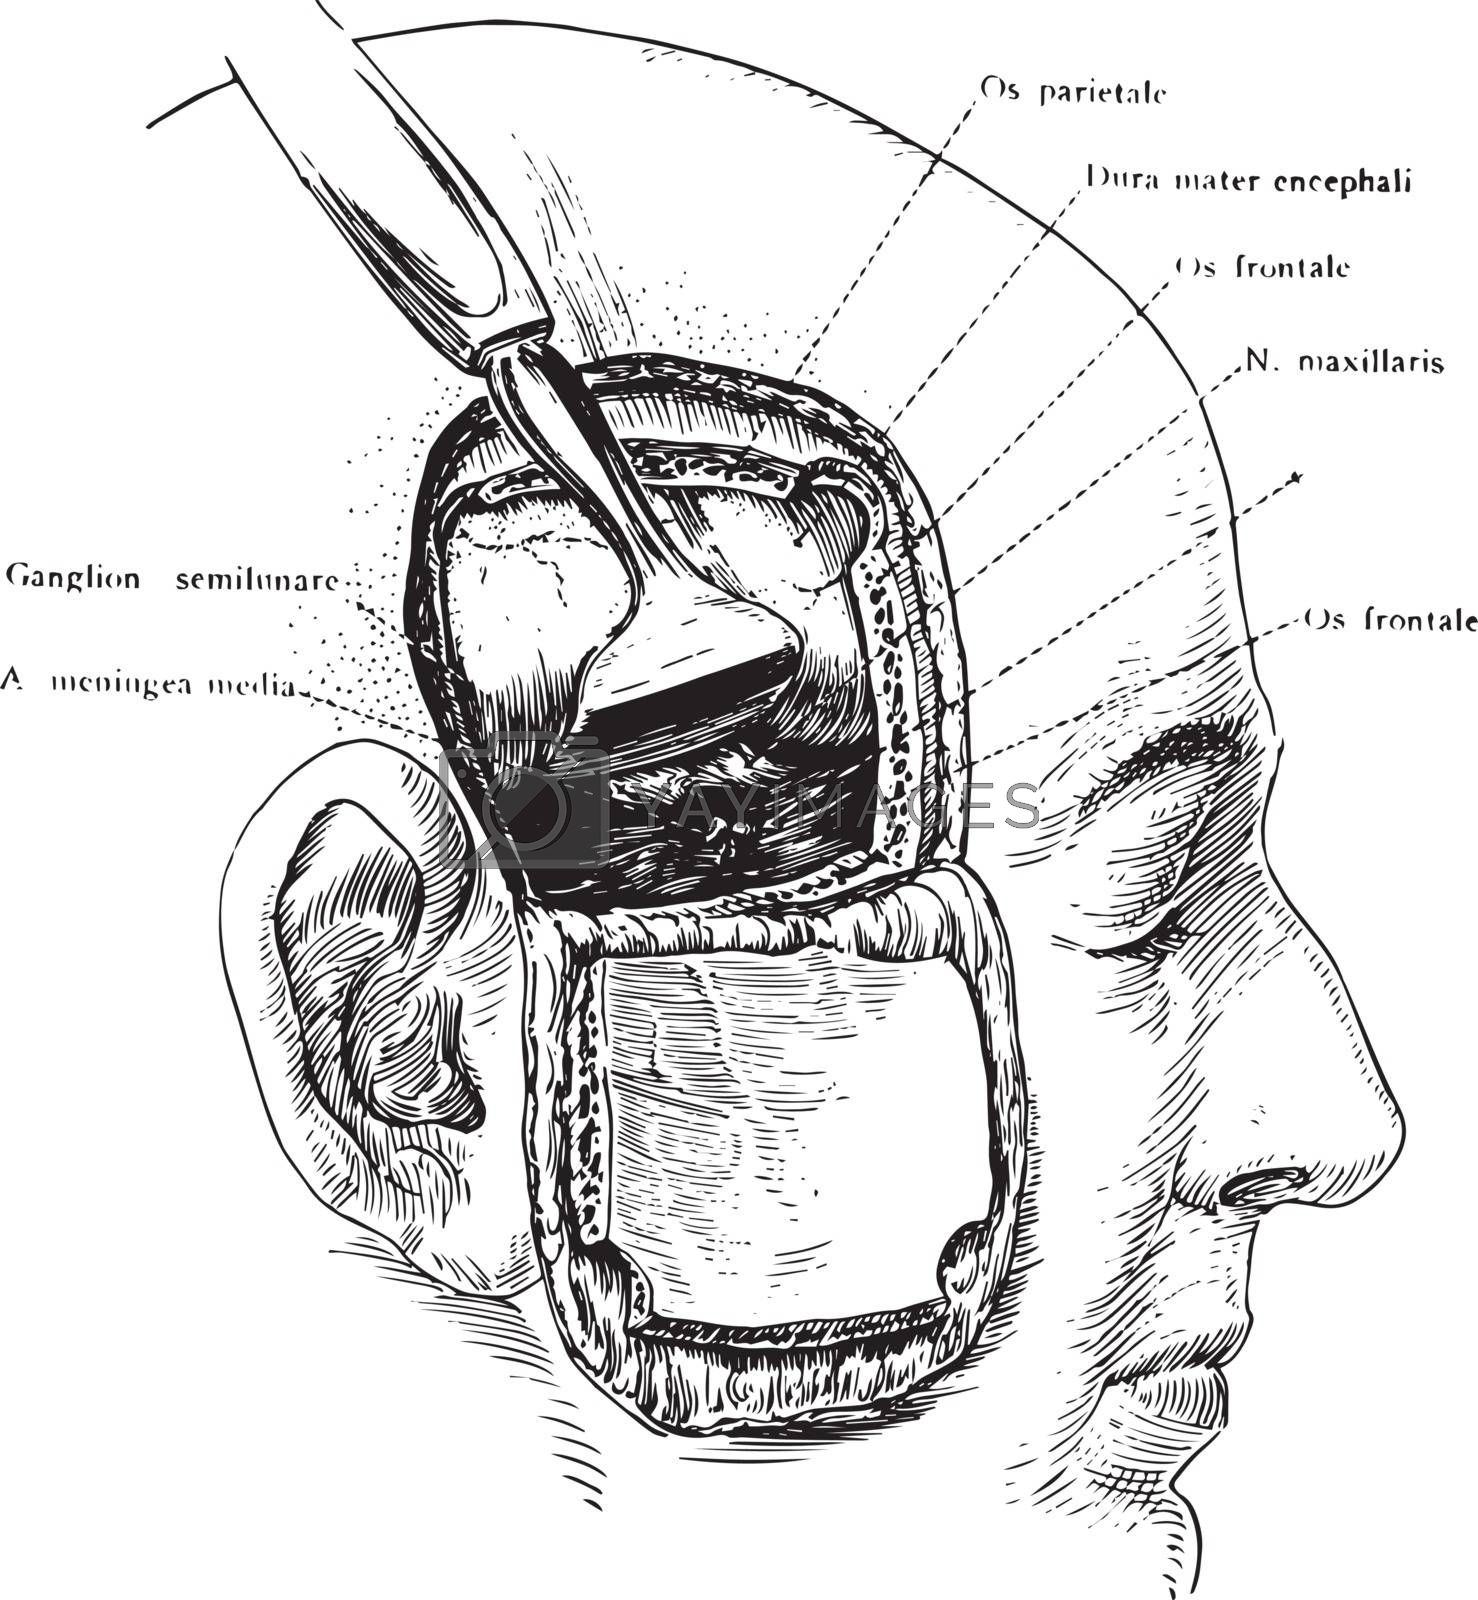 Incision of the Head Showing Gasserian Ganglion, vintage illustr by Morphart